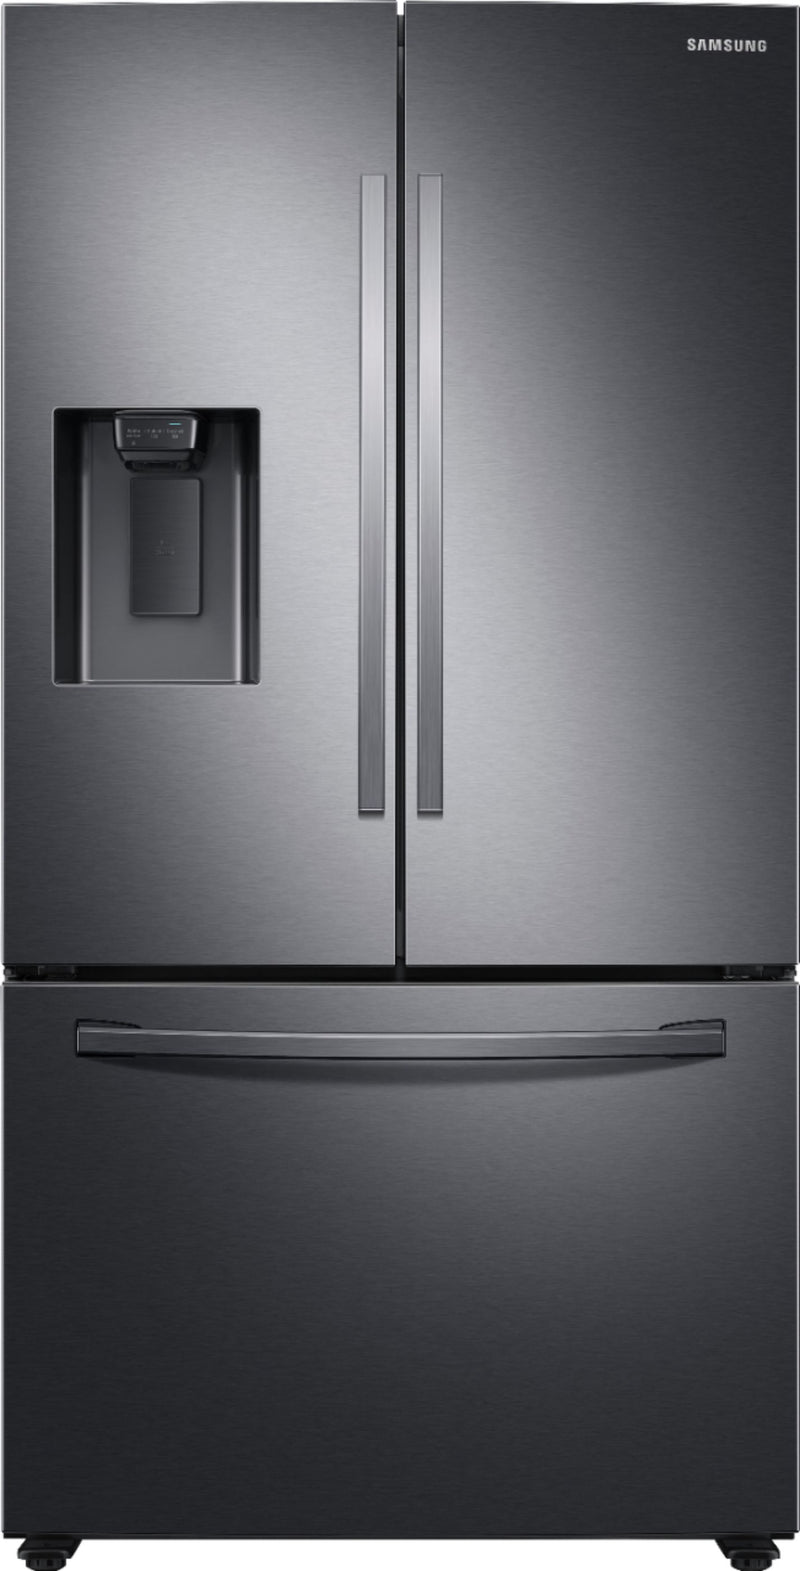 Samsung - 27 cu. ft. Large Capacity 3-Door French Door Refrigerator with External Water & Ice Dispenser - Fingerpring Resistant Black Stainless Steel